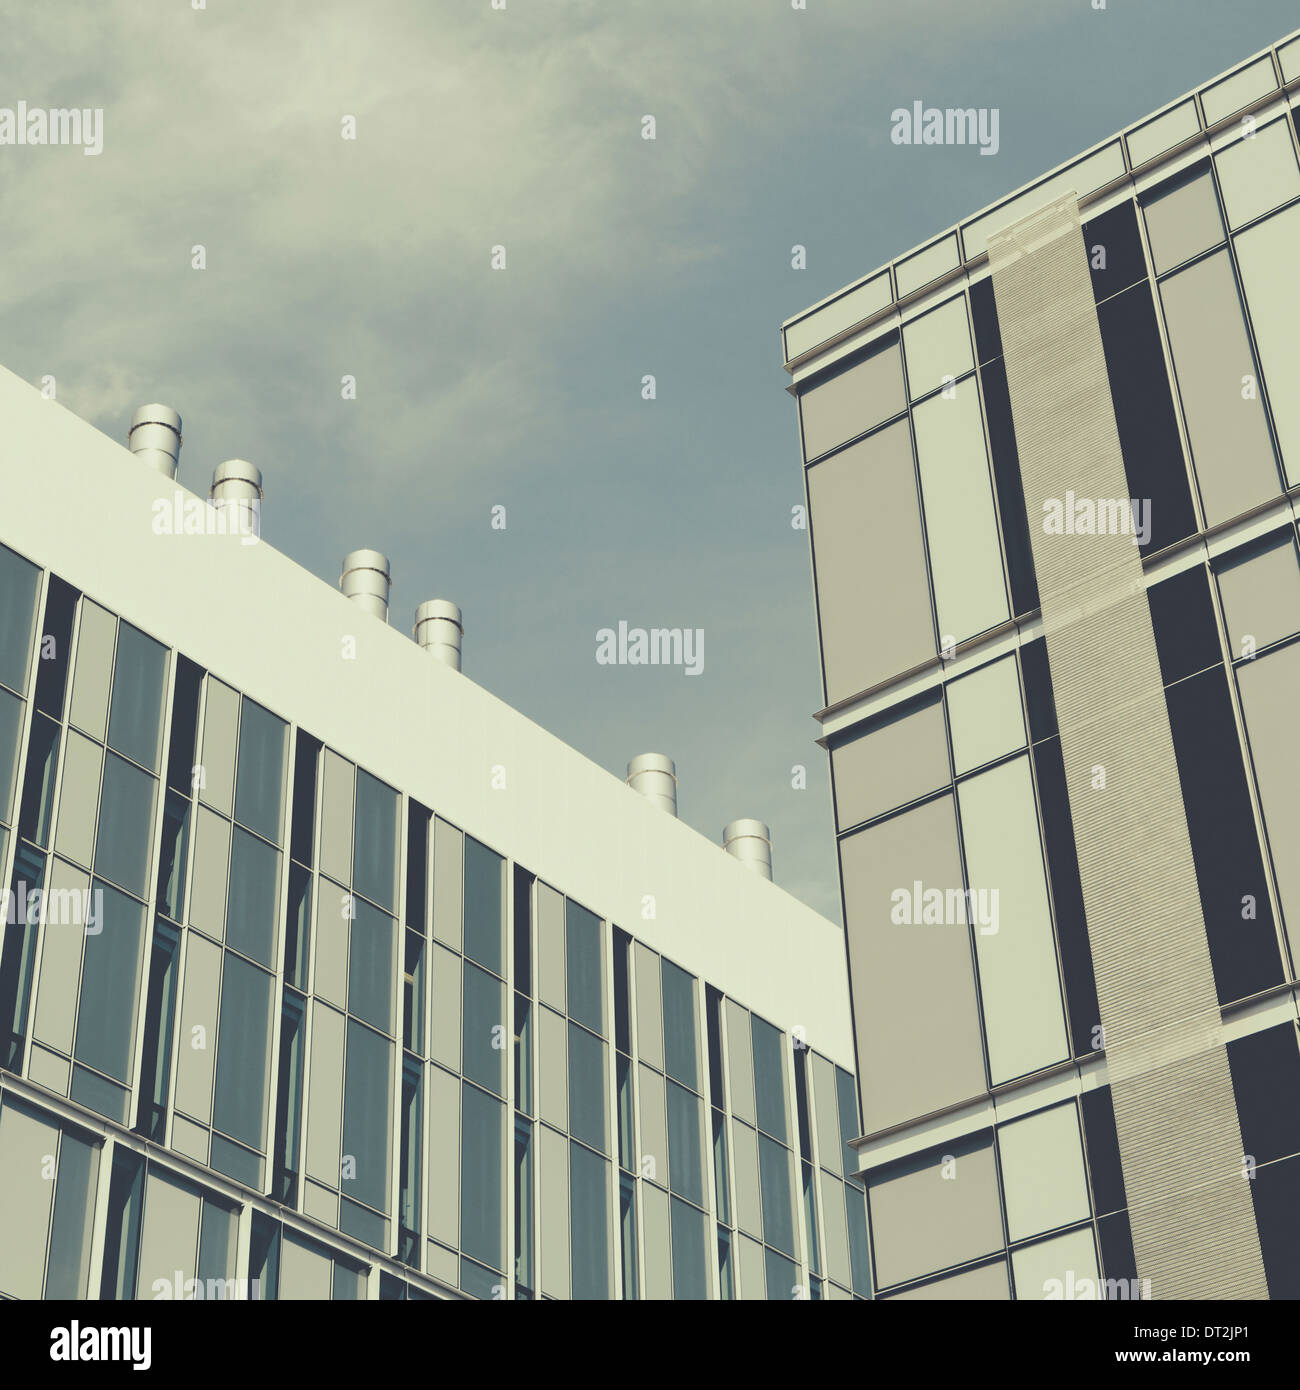 Tall modern buildings in the city of Seattle Modern architectural style and building materials - Stock Image